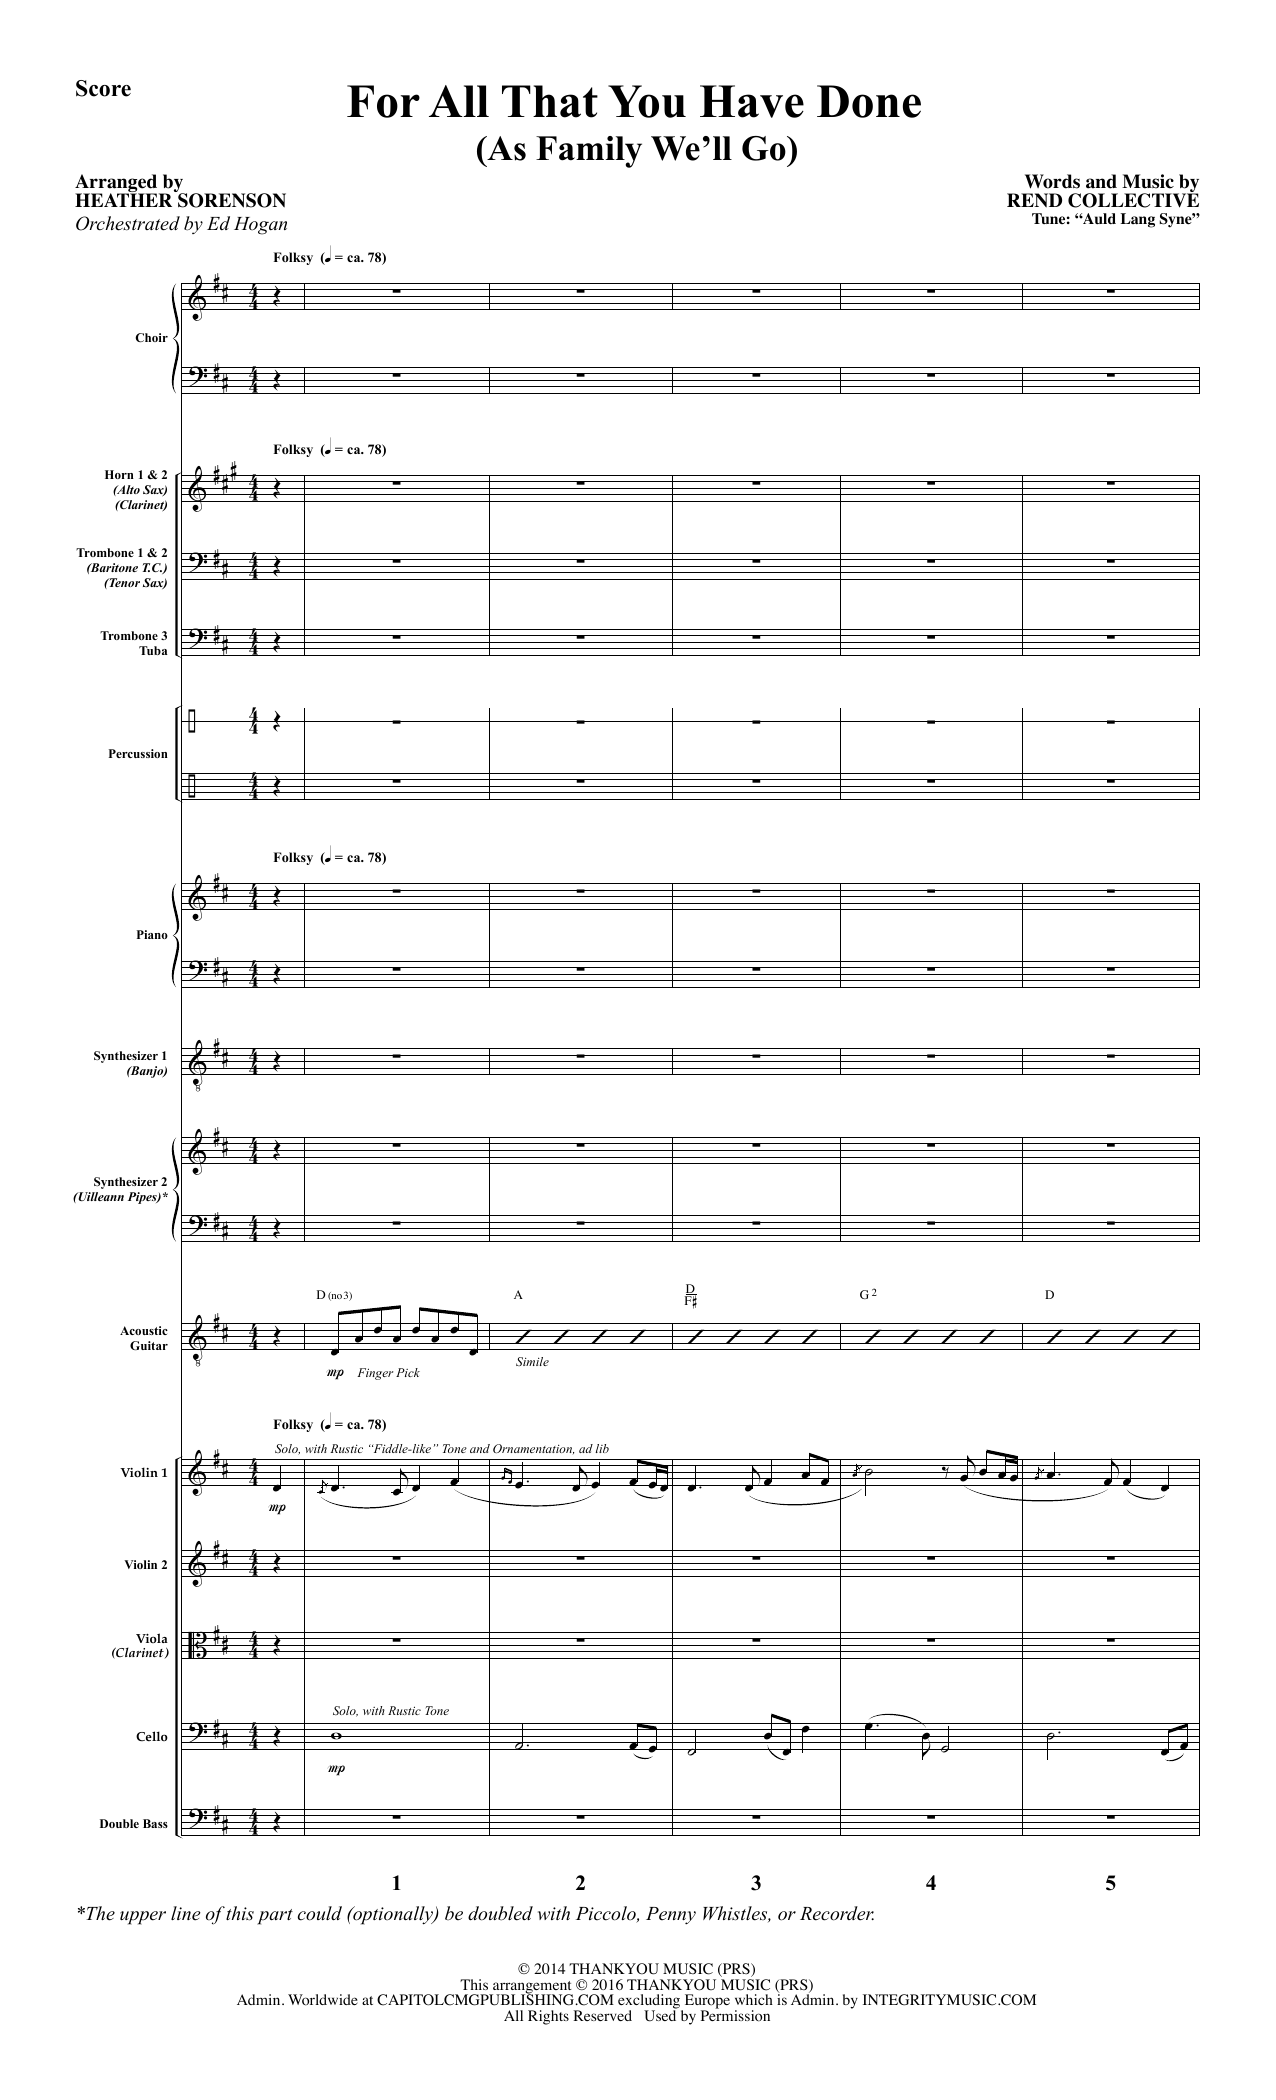 For All That You Have Done - Full Score Sheet Music